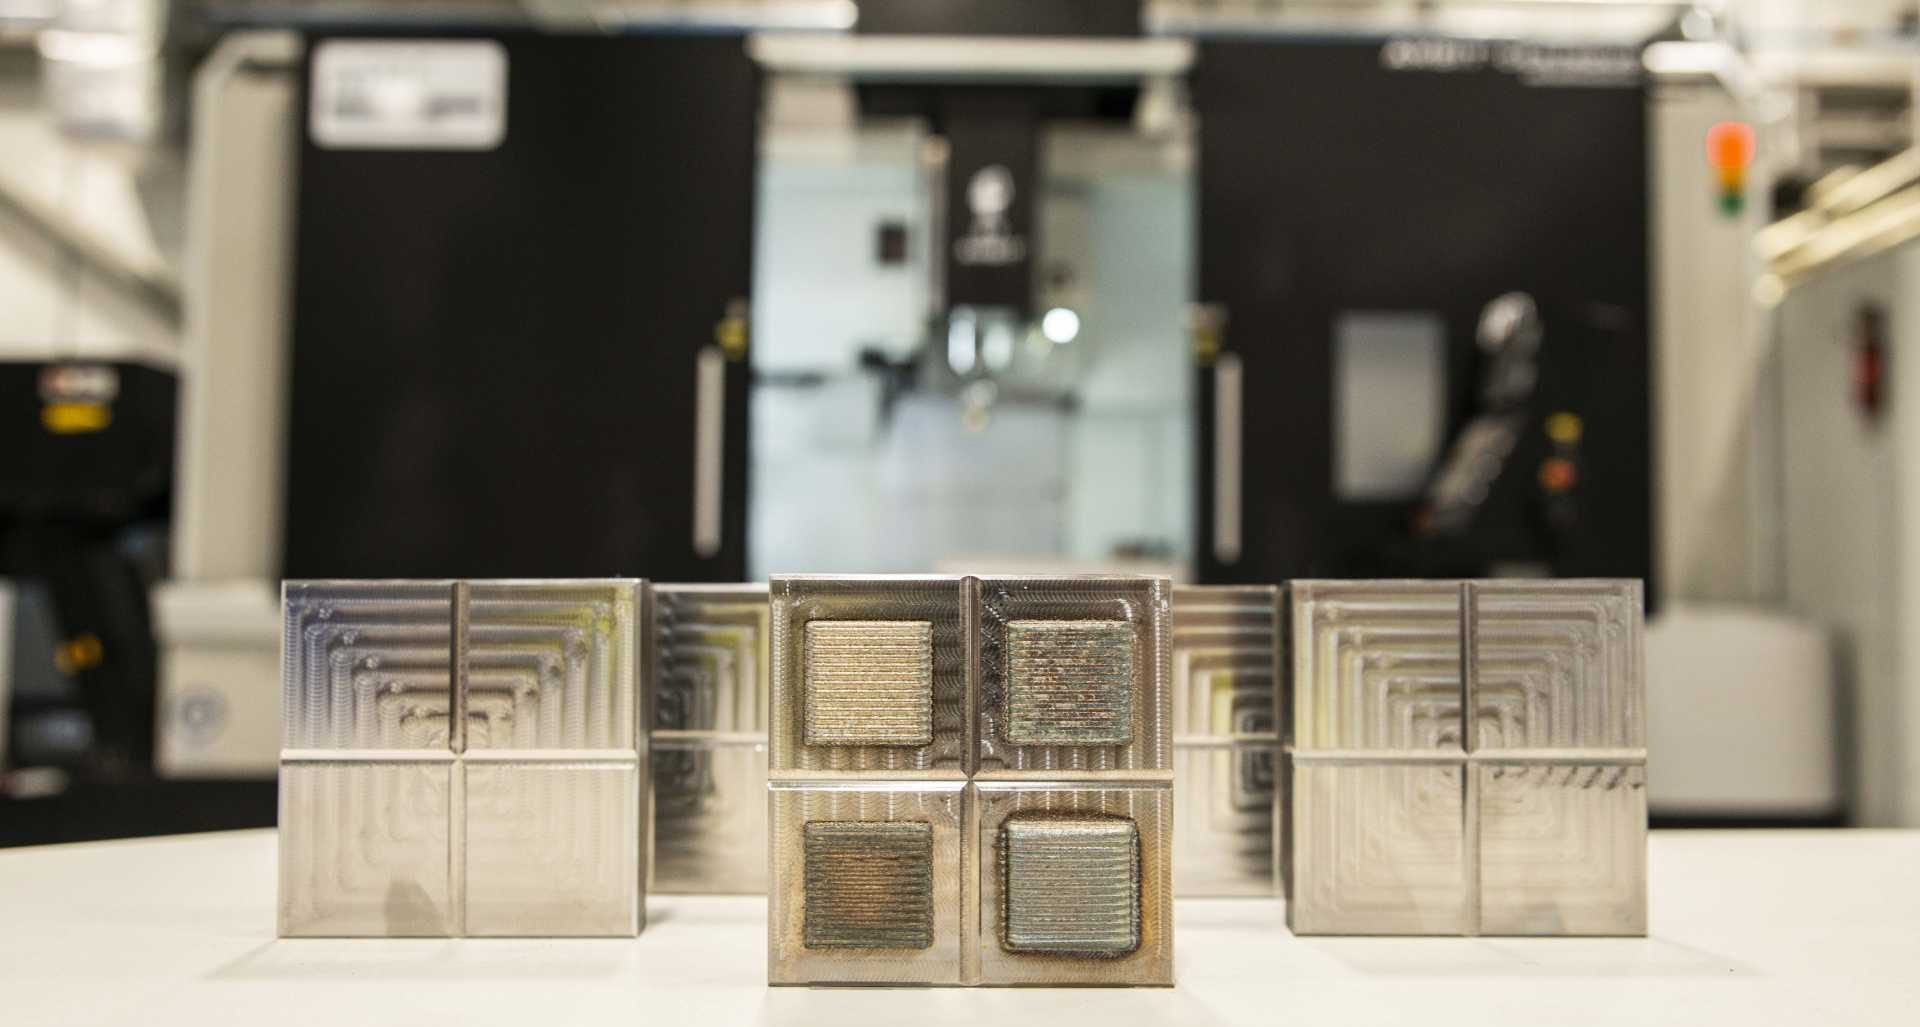 A low-cost remanufacturing solution has successfully increased the lifespan of a die by 120%. Image: HVMC